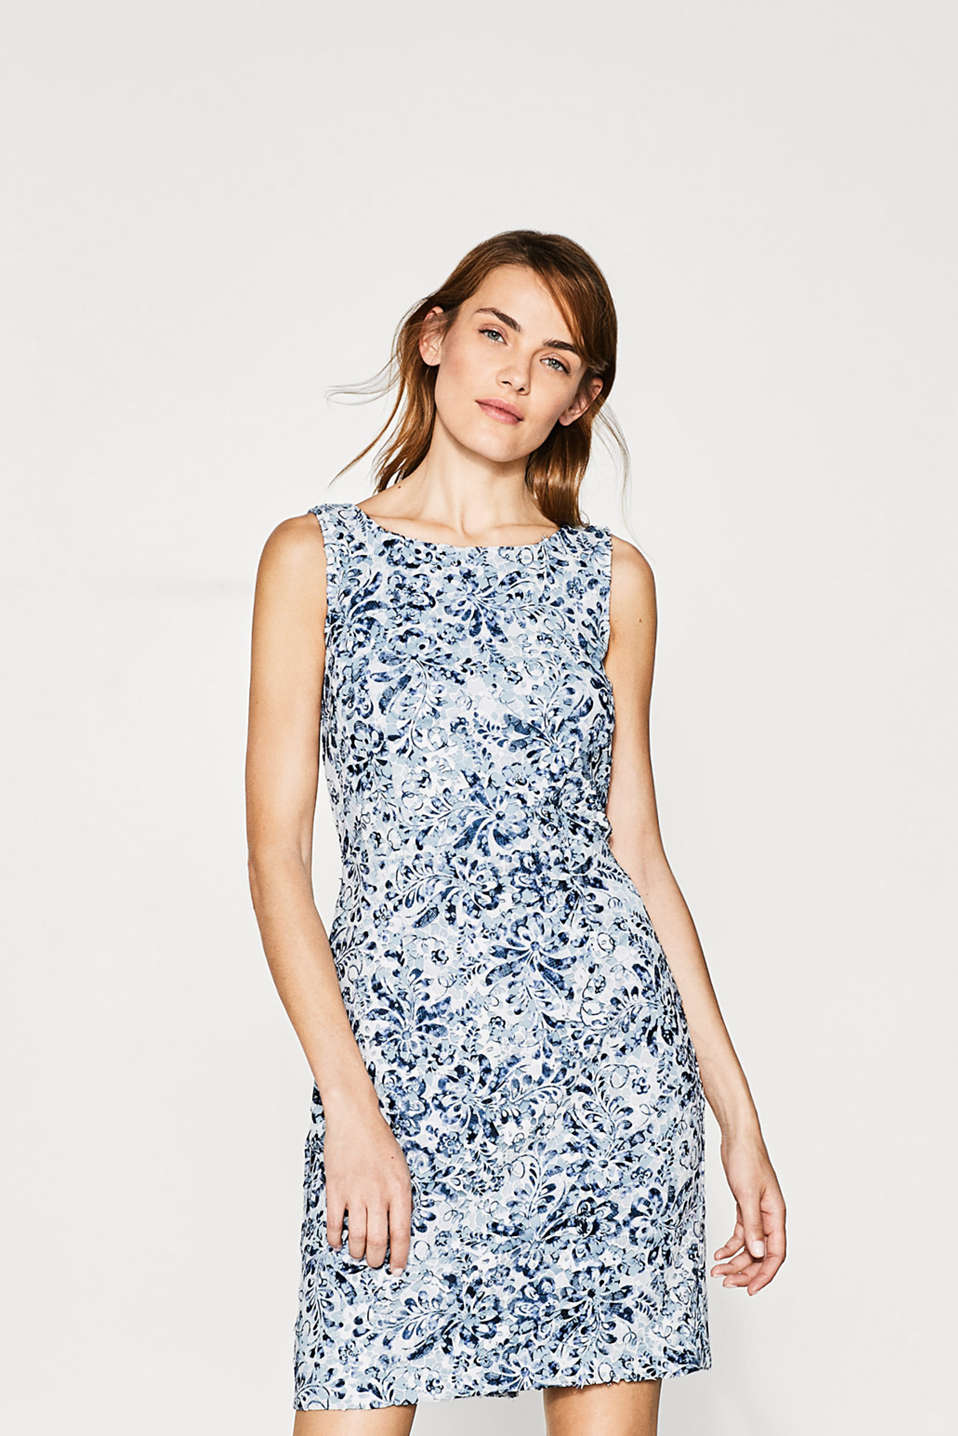 Esprit - Fitted dress in printed lace